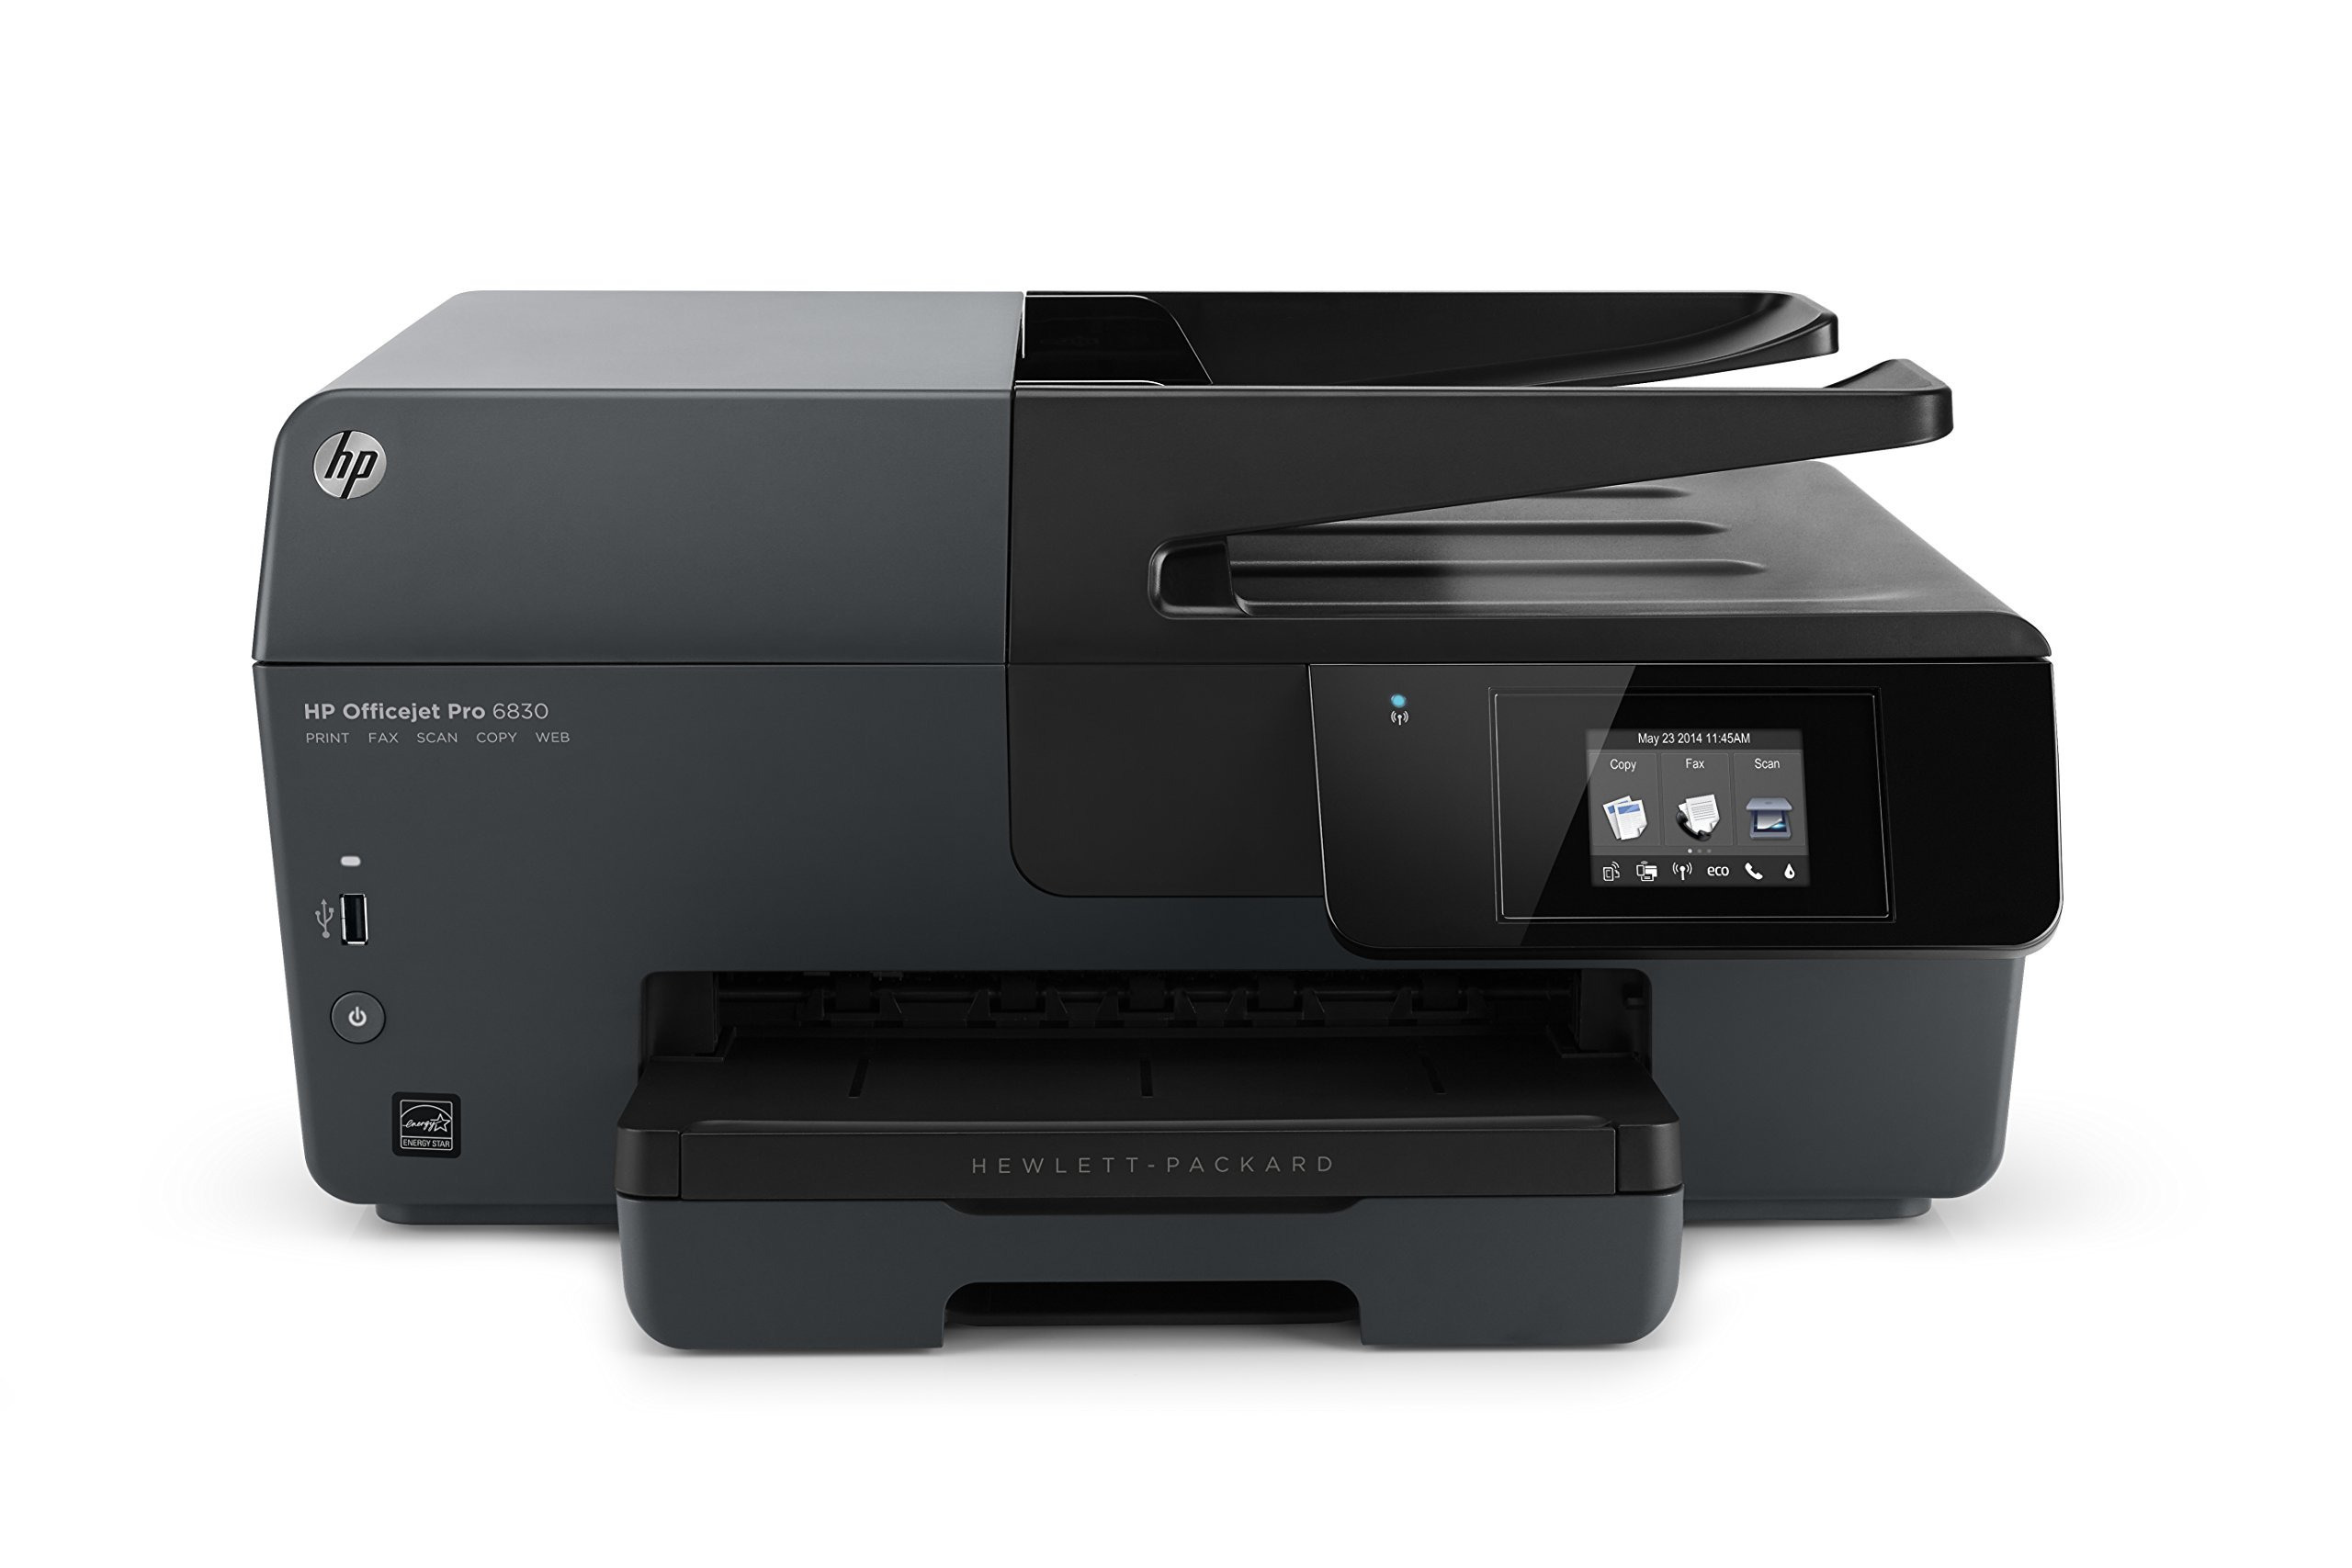 HP OfficeJet Pro 6830 Wireless All-in-One Photo Printer with Mobile Printing, Instant Ink ready, Refurbished (E3E02AR)